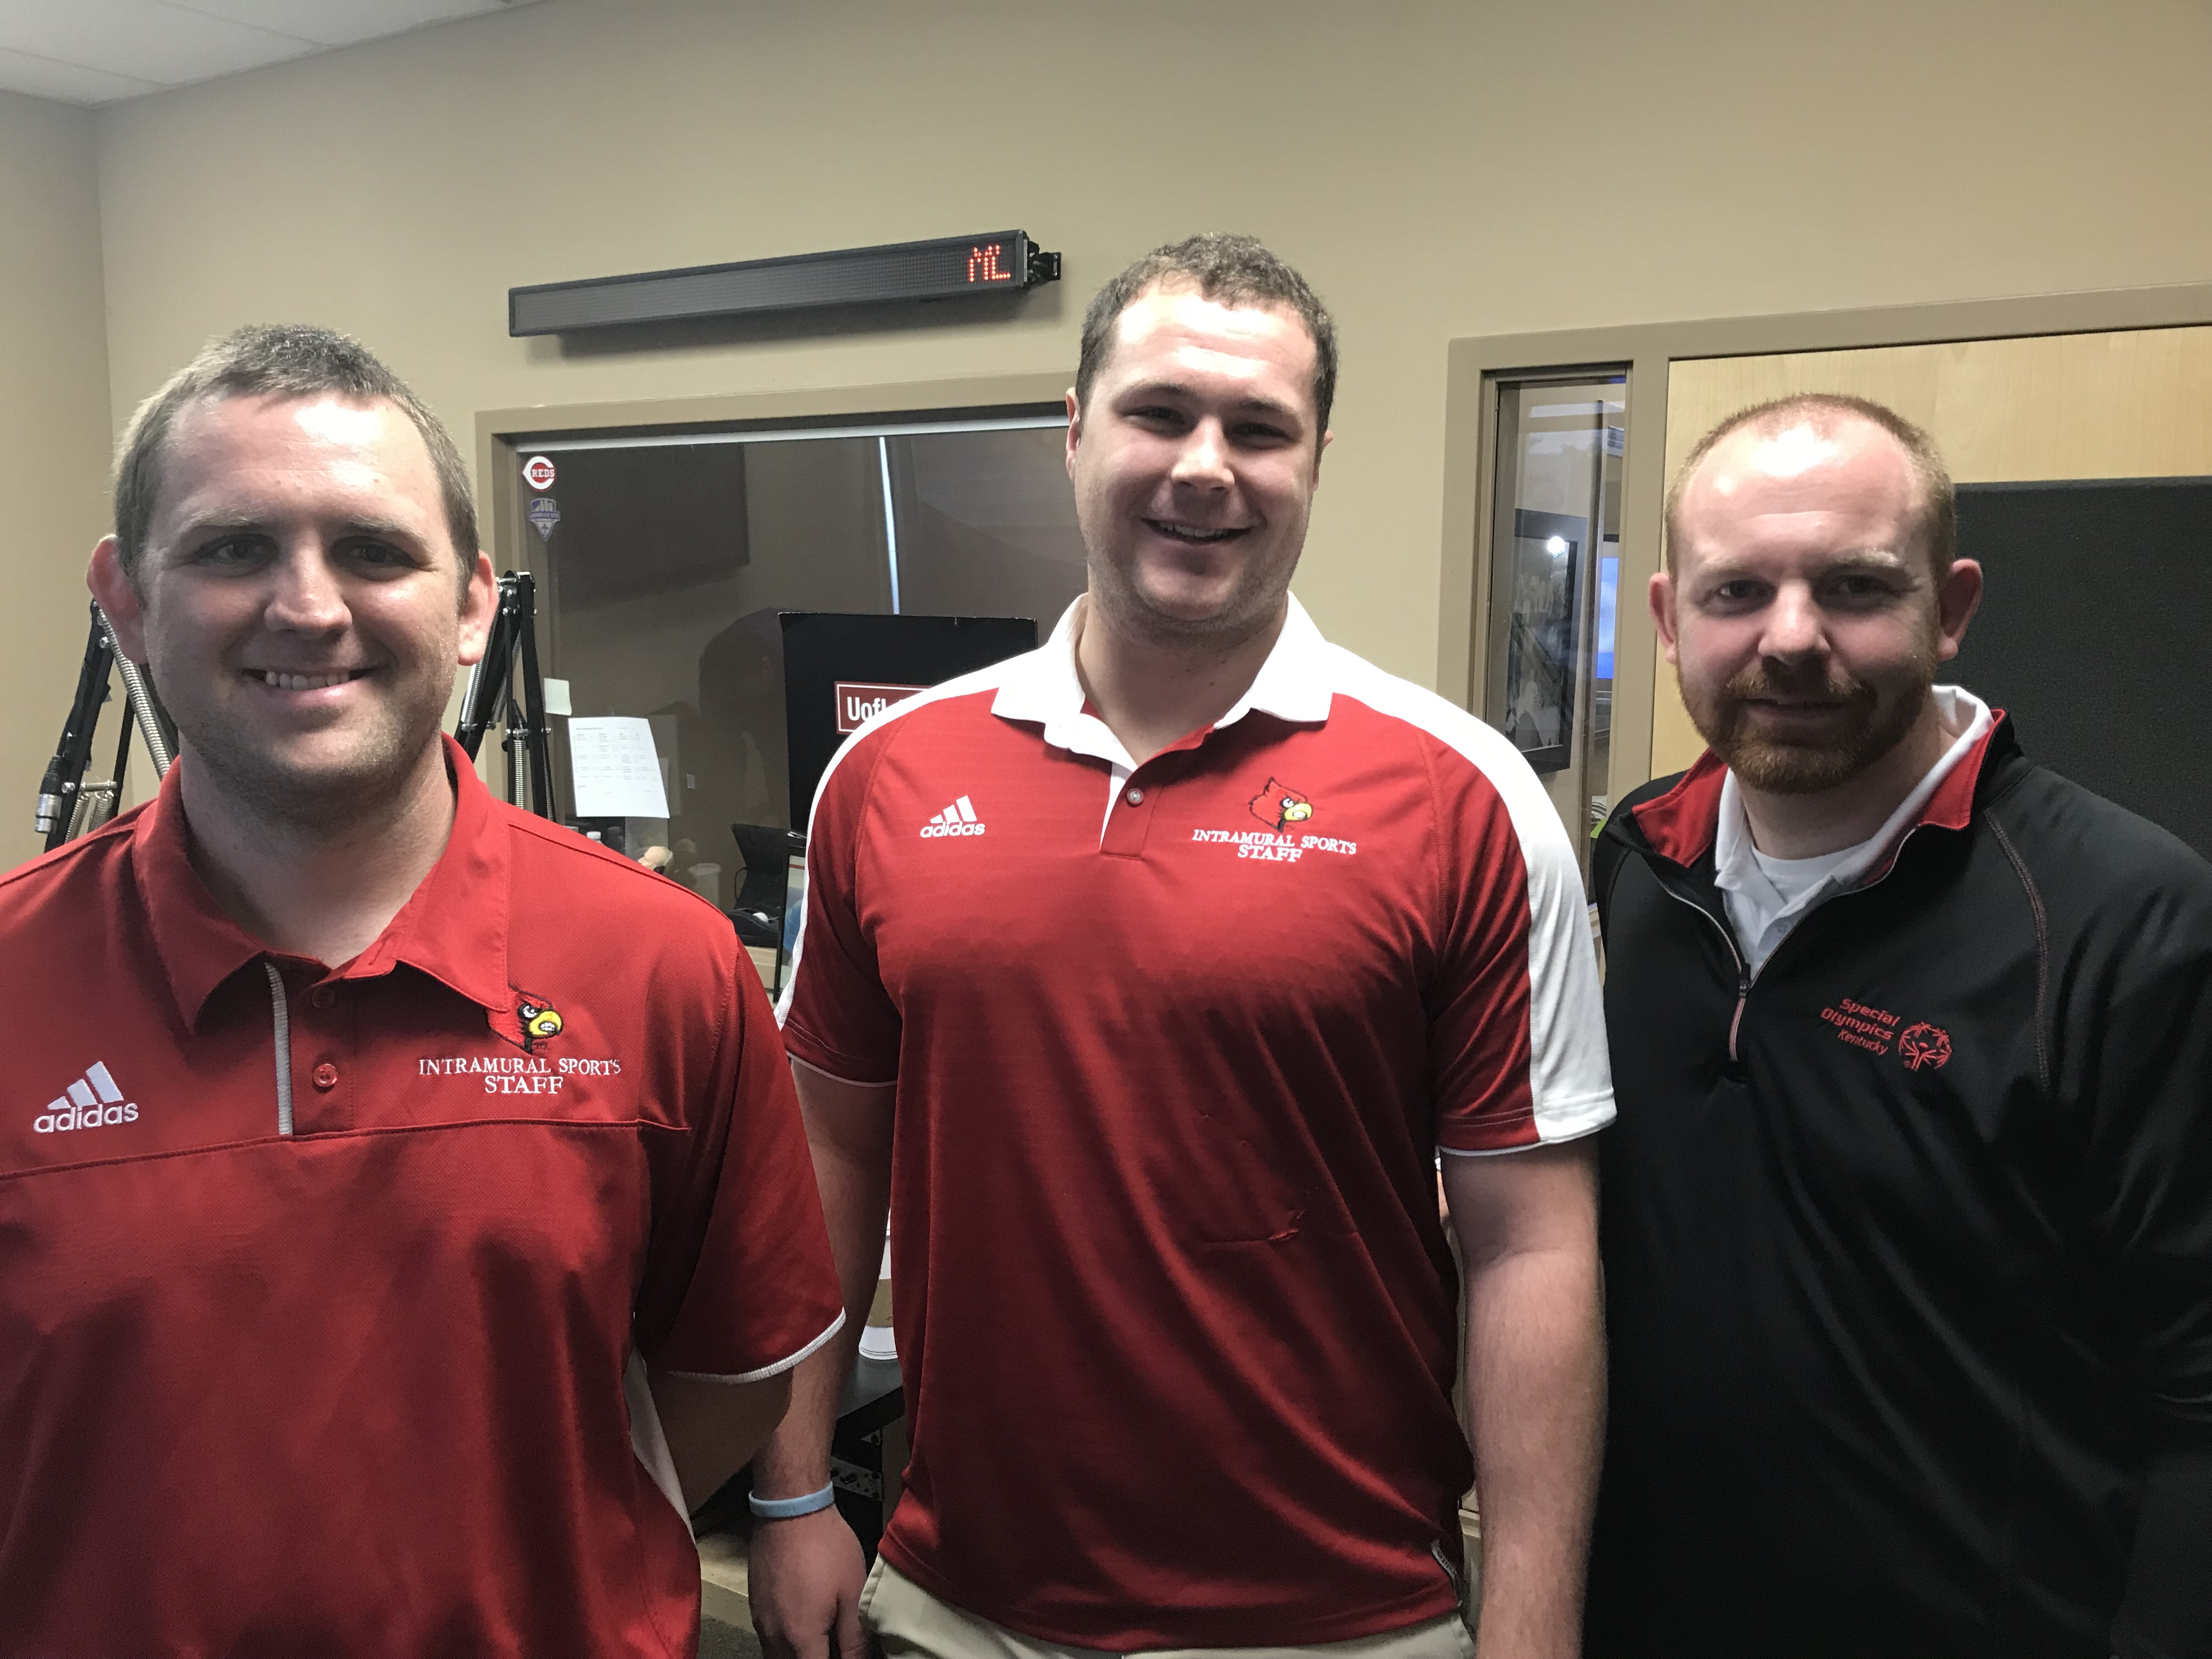 L to R – Justin Peterson – UofL Intramurals – Asst. Director; John Hower – UofL student; Justin Harville – Special Olympics